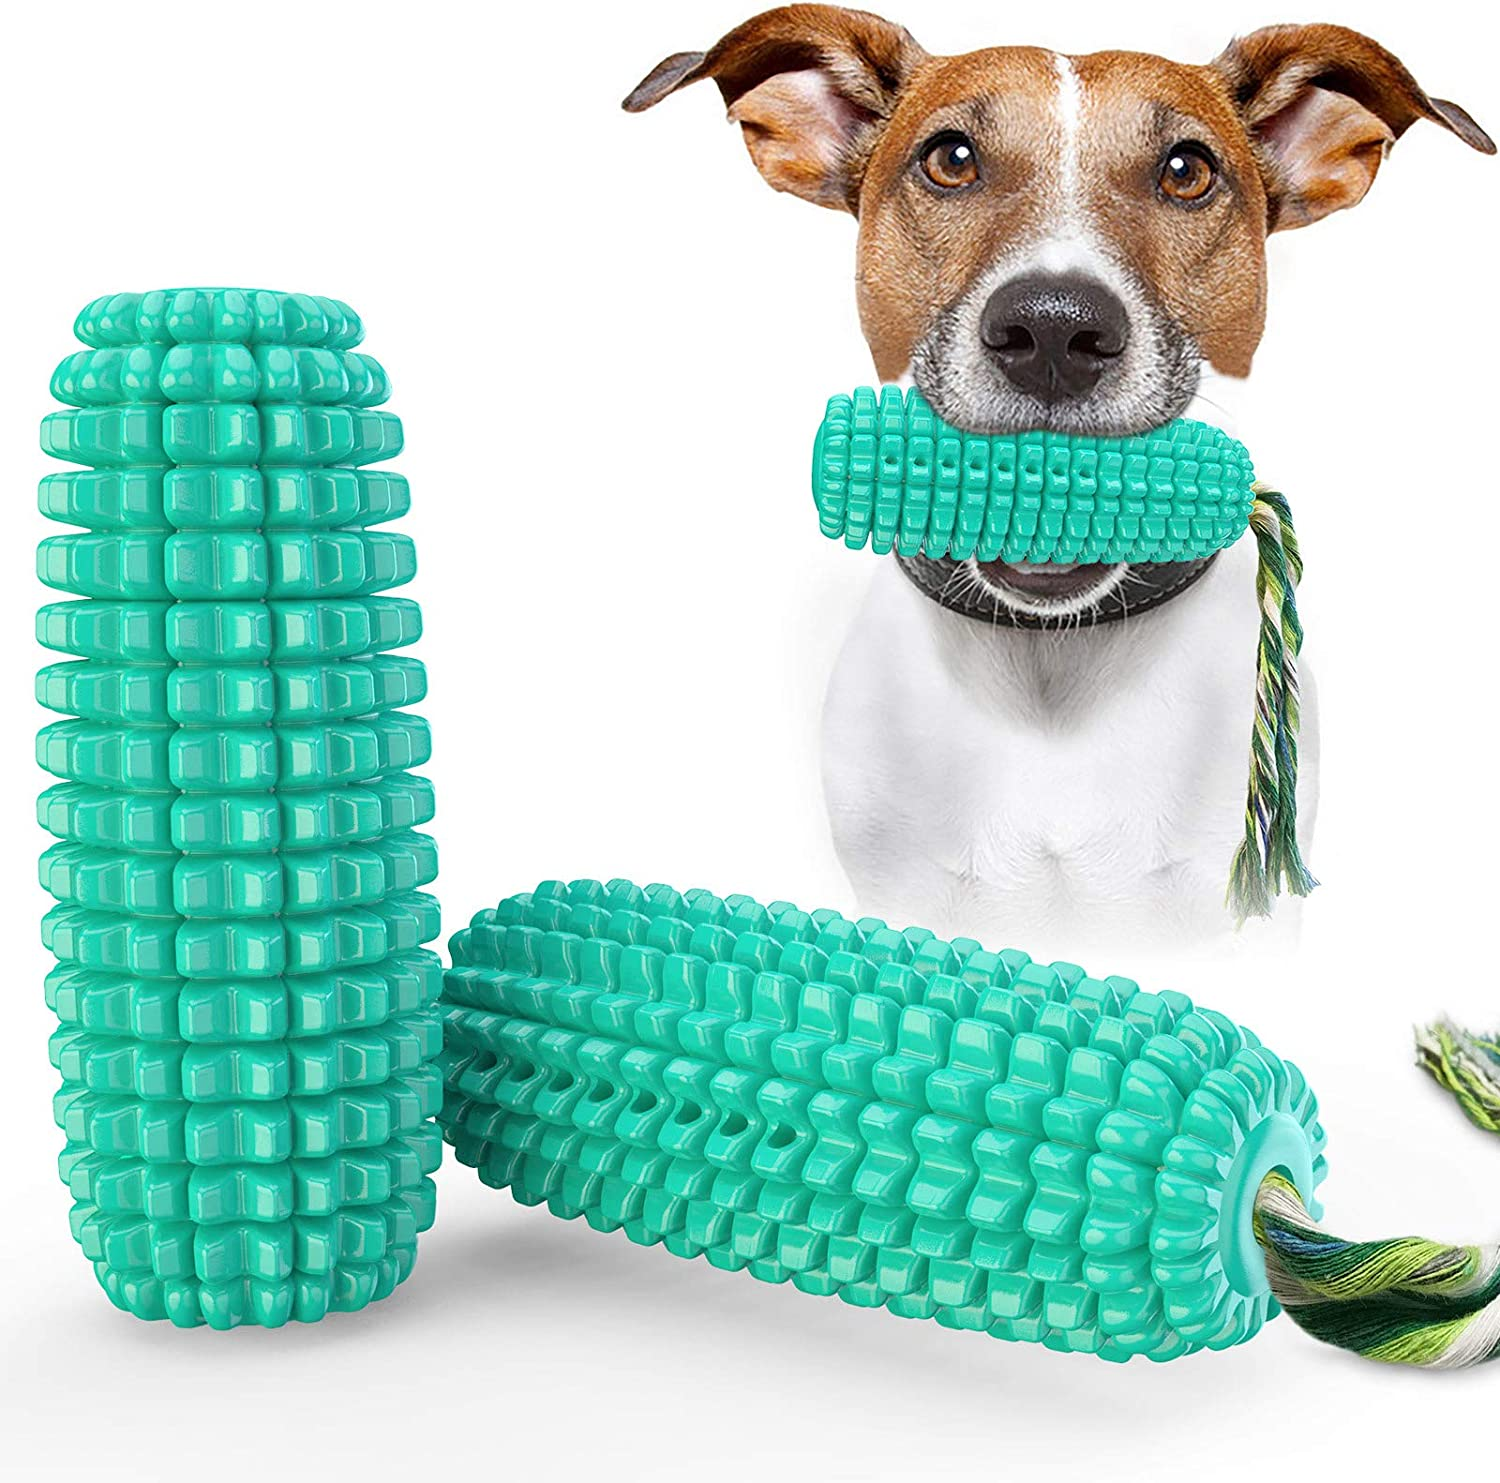 HRXS Pet Products Corn Molar Don't miss the campaign Squeaking Max 55% OFF Stick Dog Toothbrush